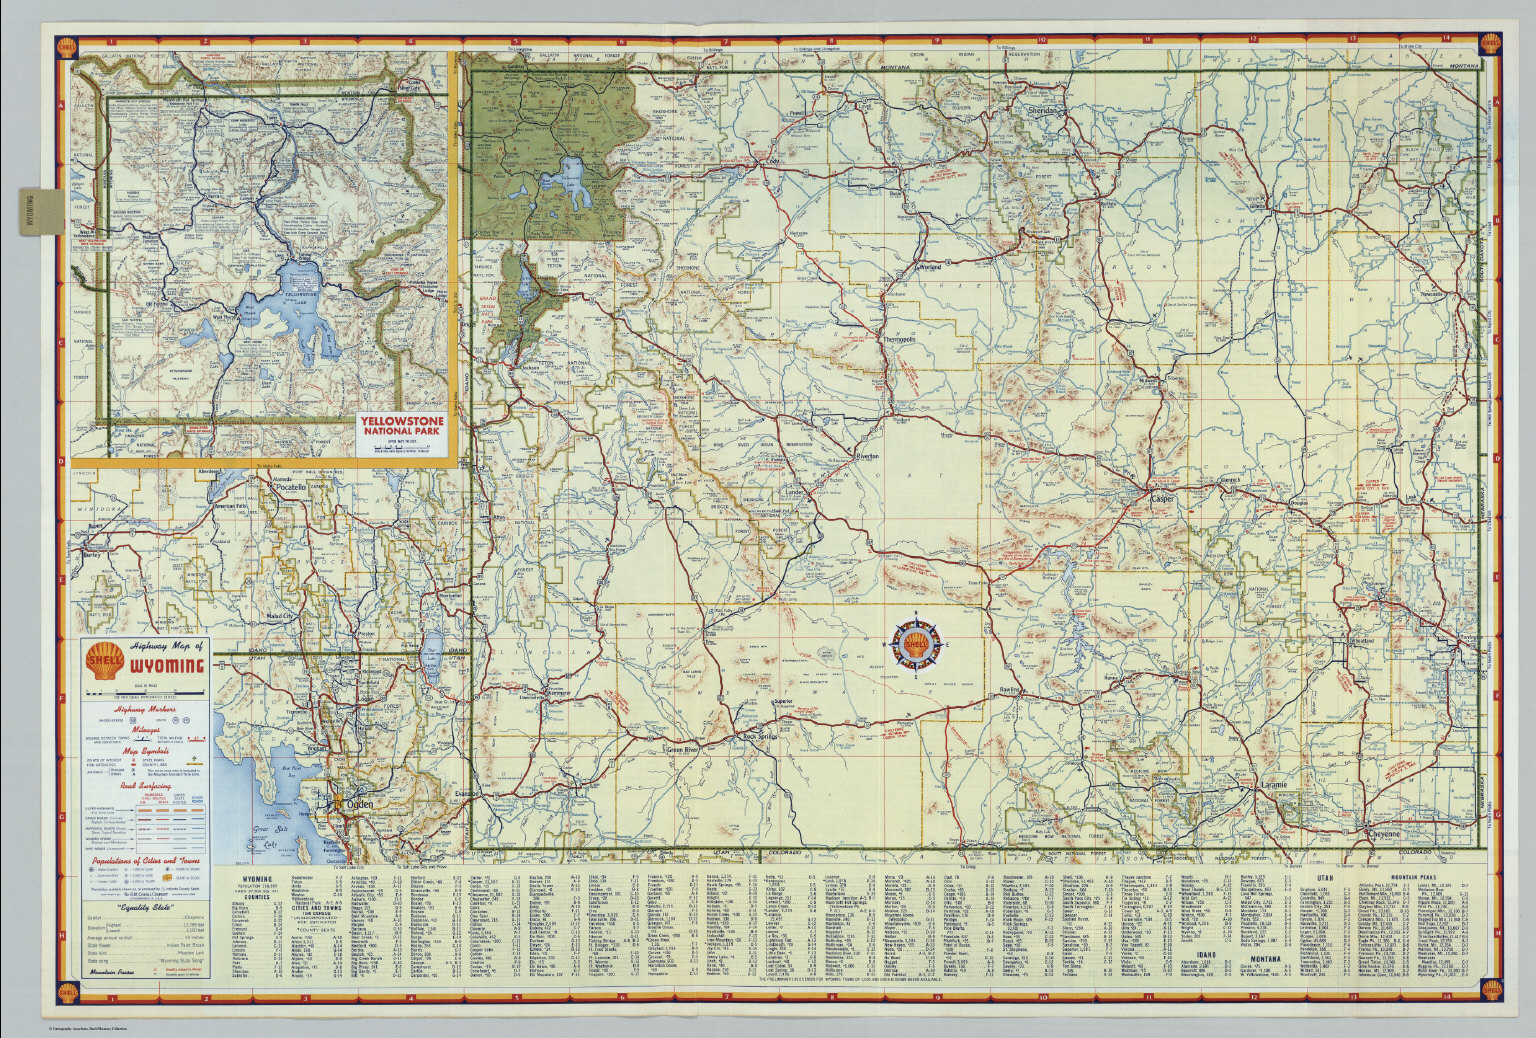 Shell Highway Map Of Wyoming David Rumsey Historical Map Collection - Wyoming highway map